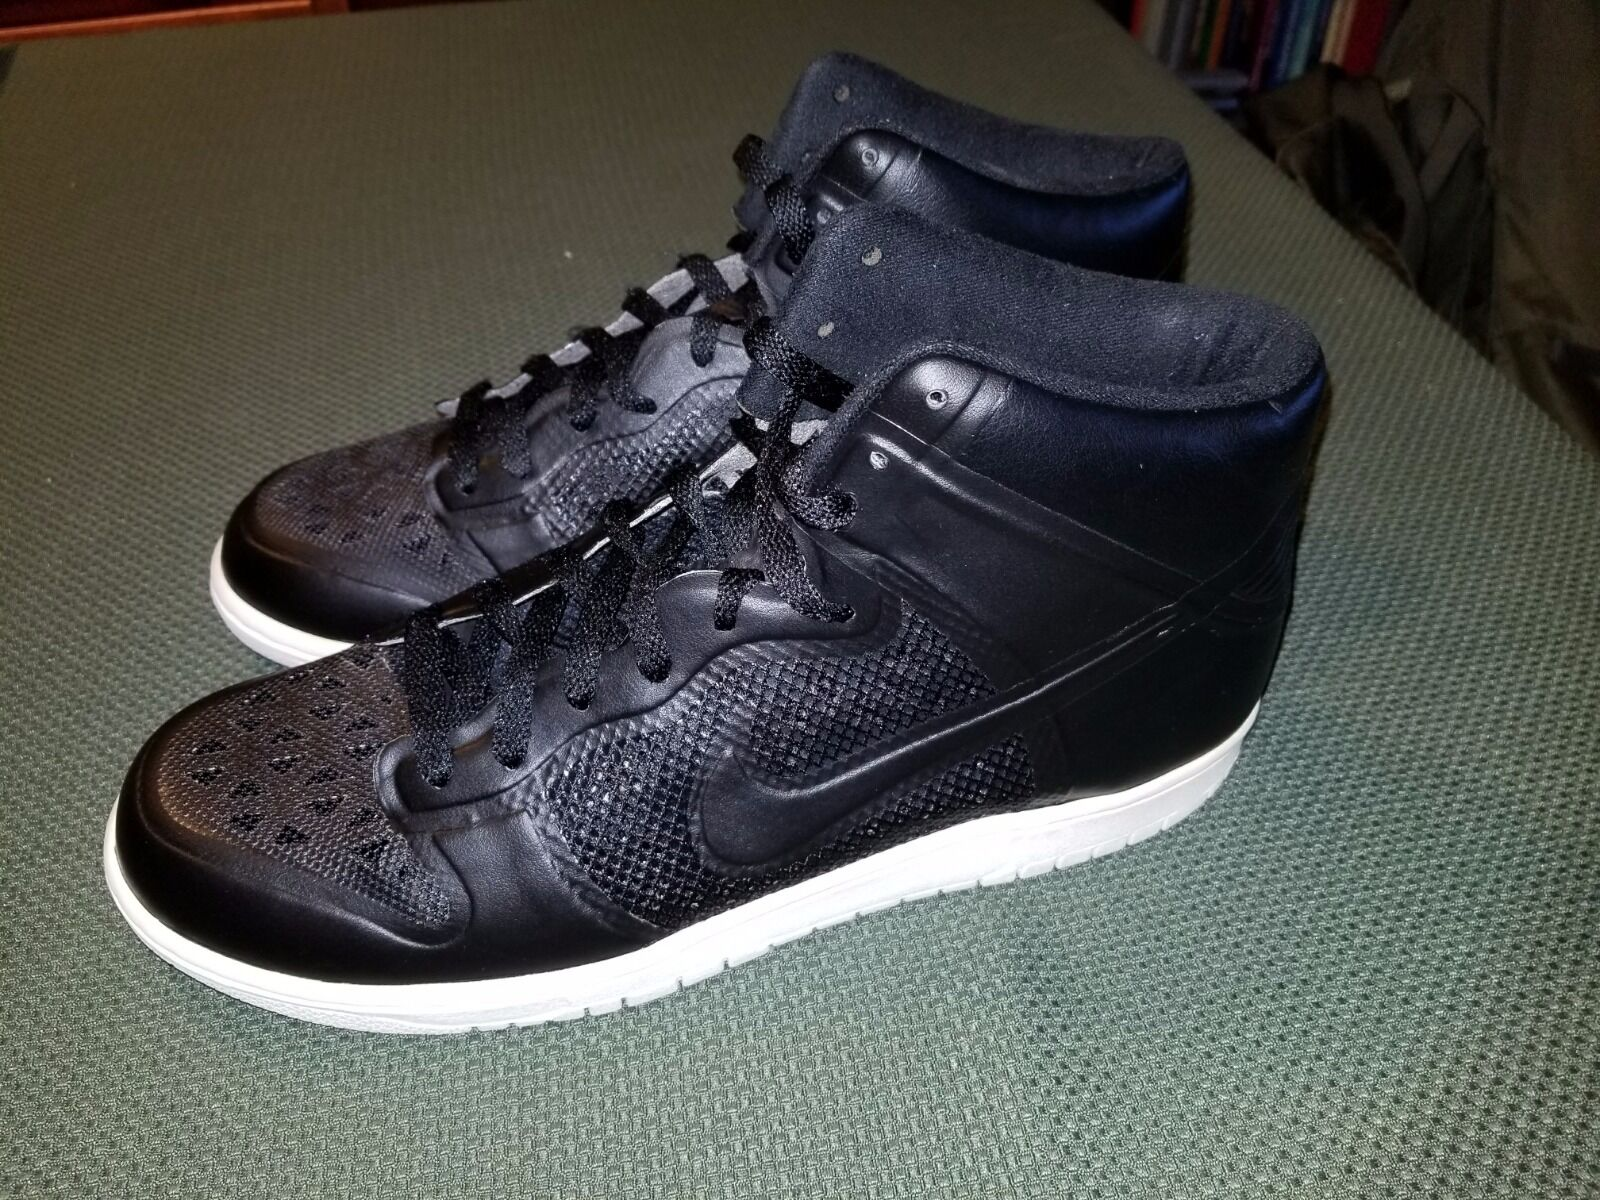 NIKE DUNK HI FUSE Black Sneakers Size US 11 Pre-Owned